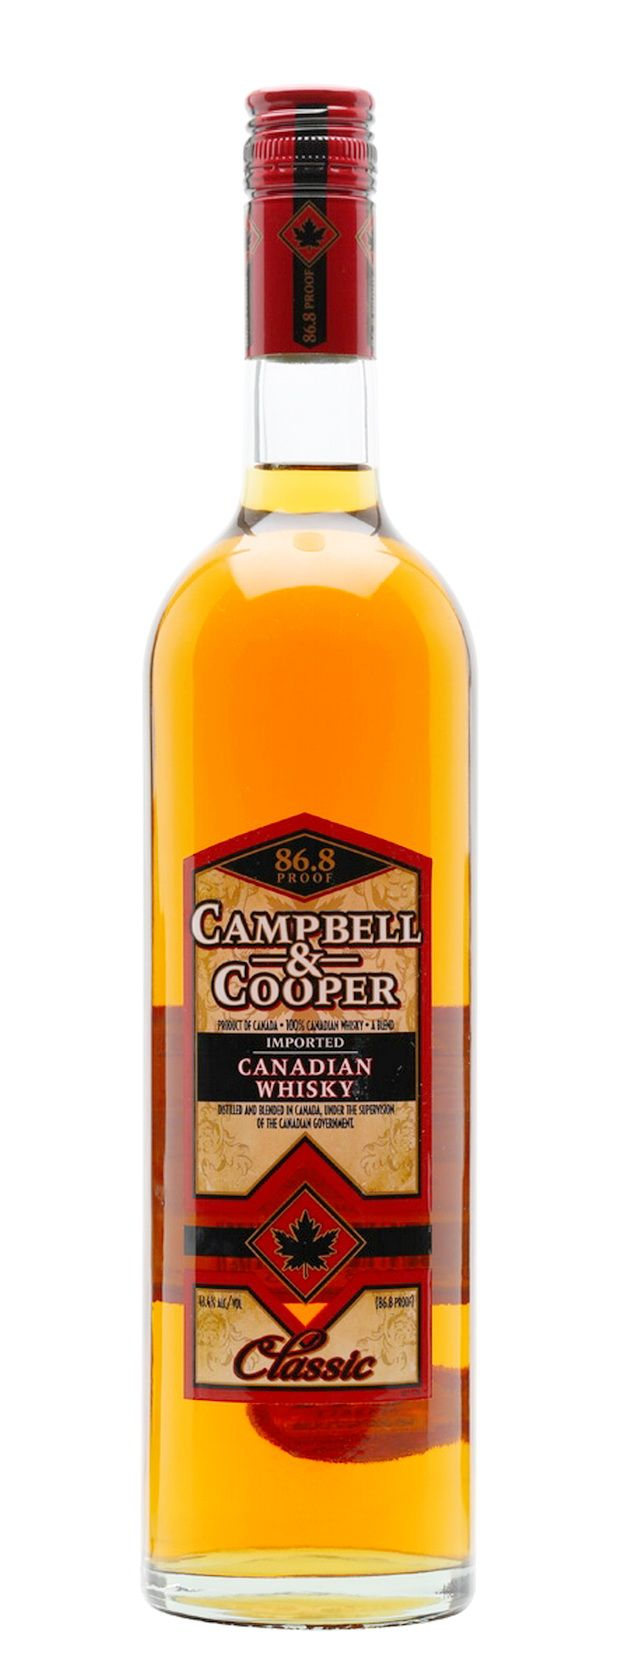 Campbell & Cooper Classic Canadian Whisky - Blended Canadian Whisky -  Campbell & Cooper Classic is a Canadian whisky from Frank Lin distillers of California. This is very hard to find outside of the US, so we're delighted to have been able to source some.